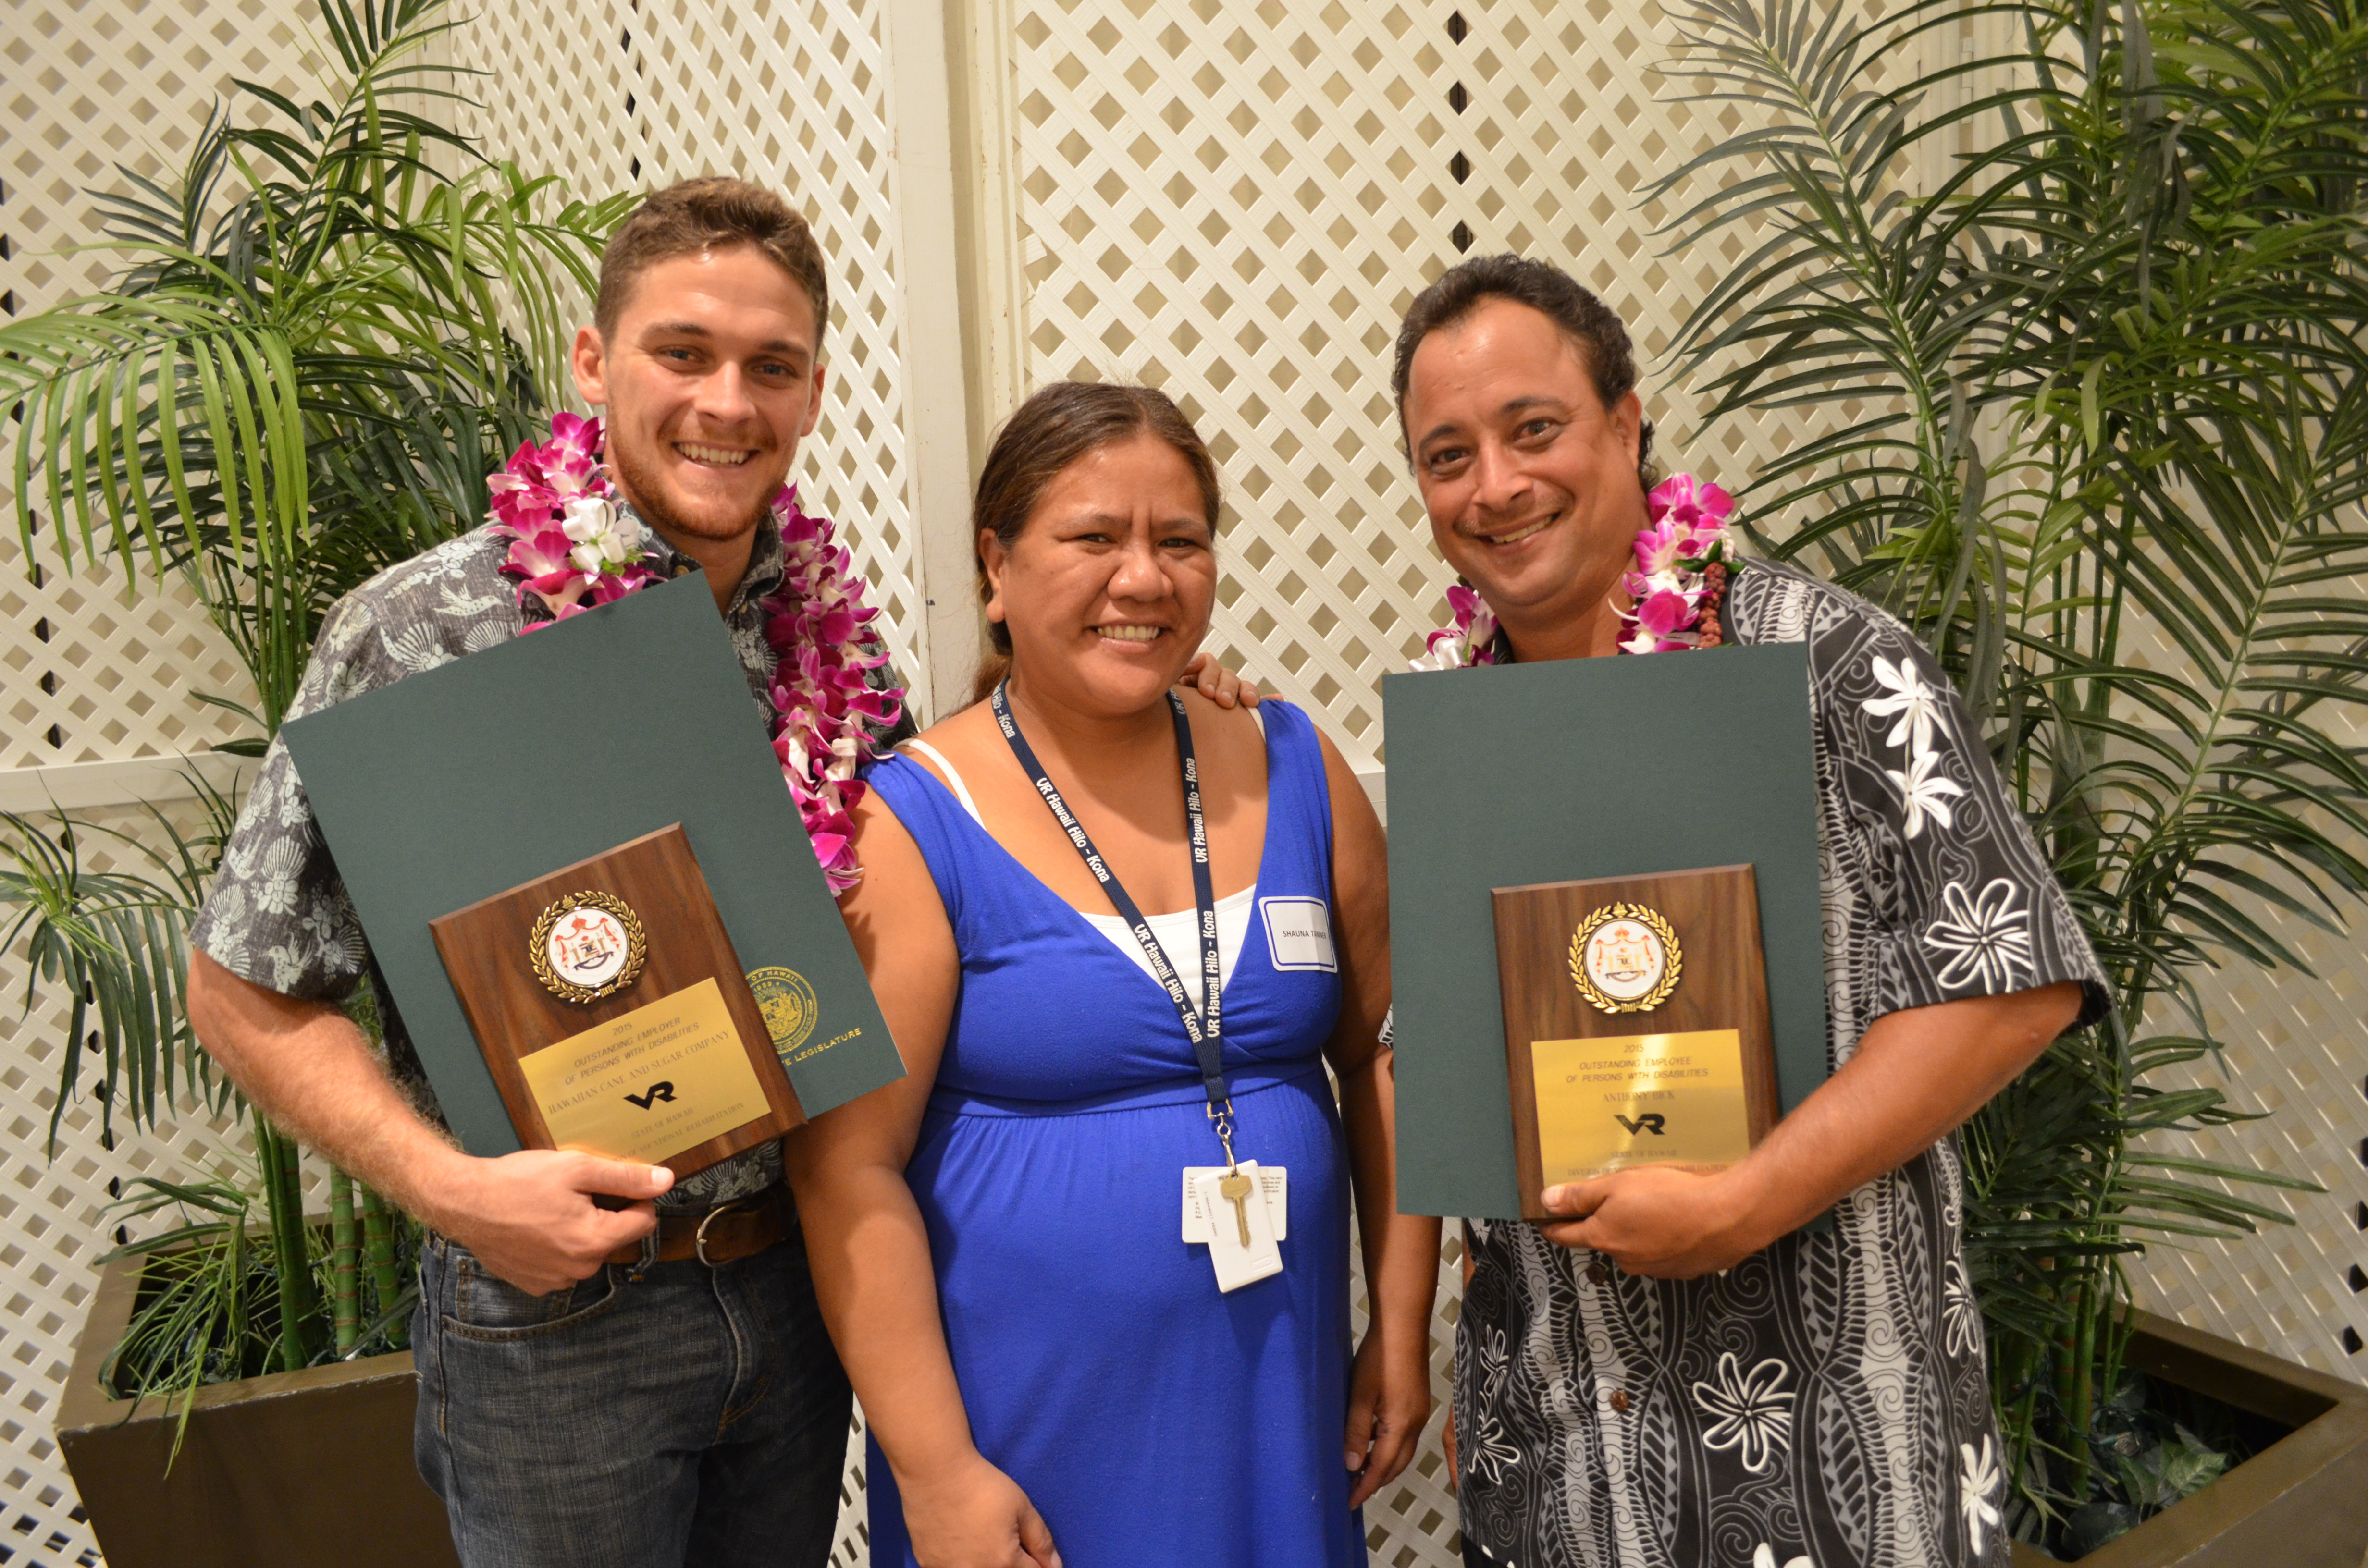 The Community Business Award was presented by the Maui Nonprofit Directors Association for HC&S' longstanding support of the Maui community. HC&S photo.